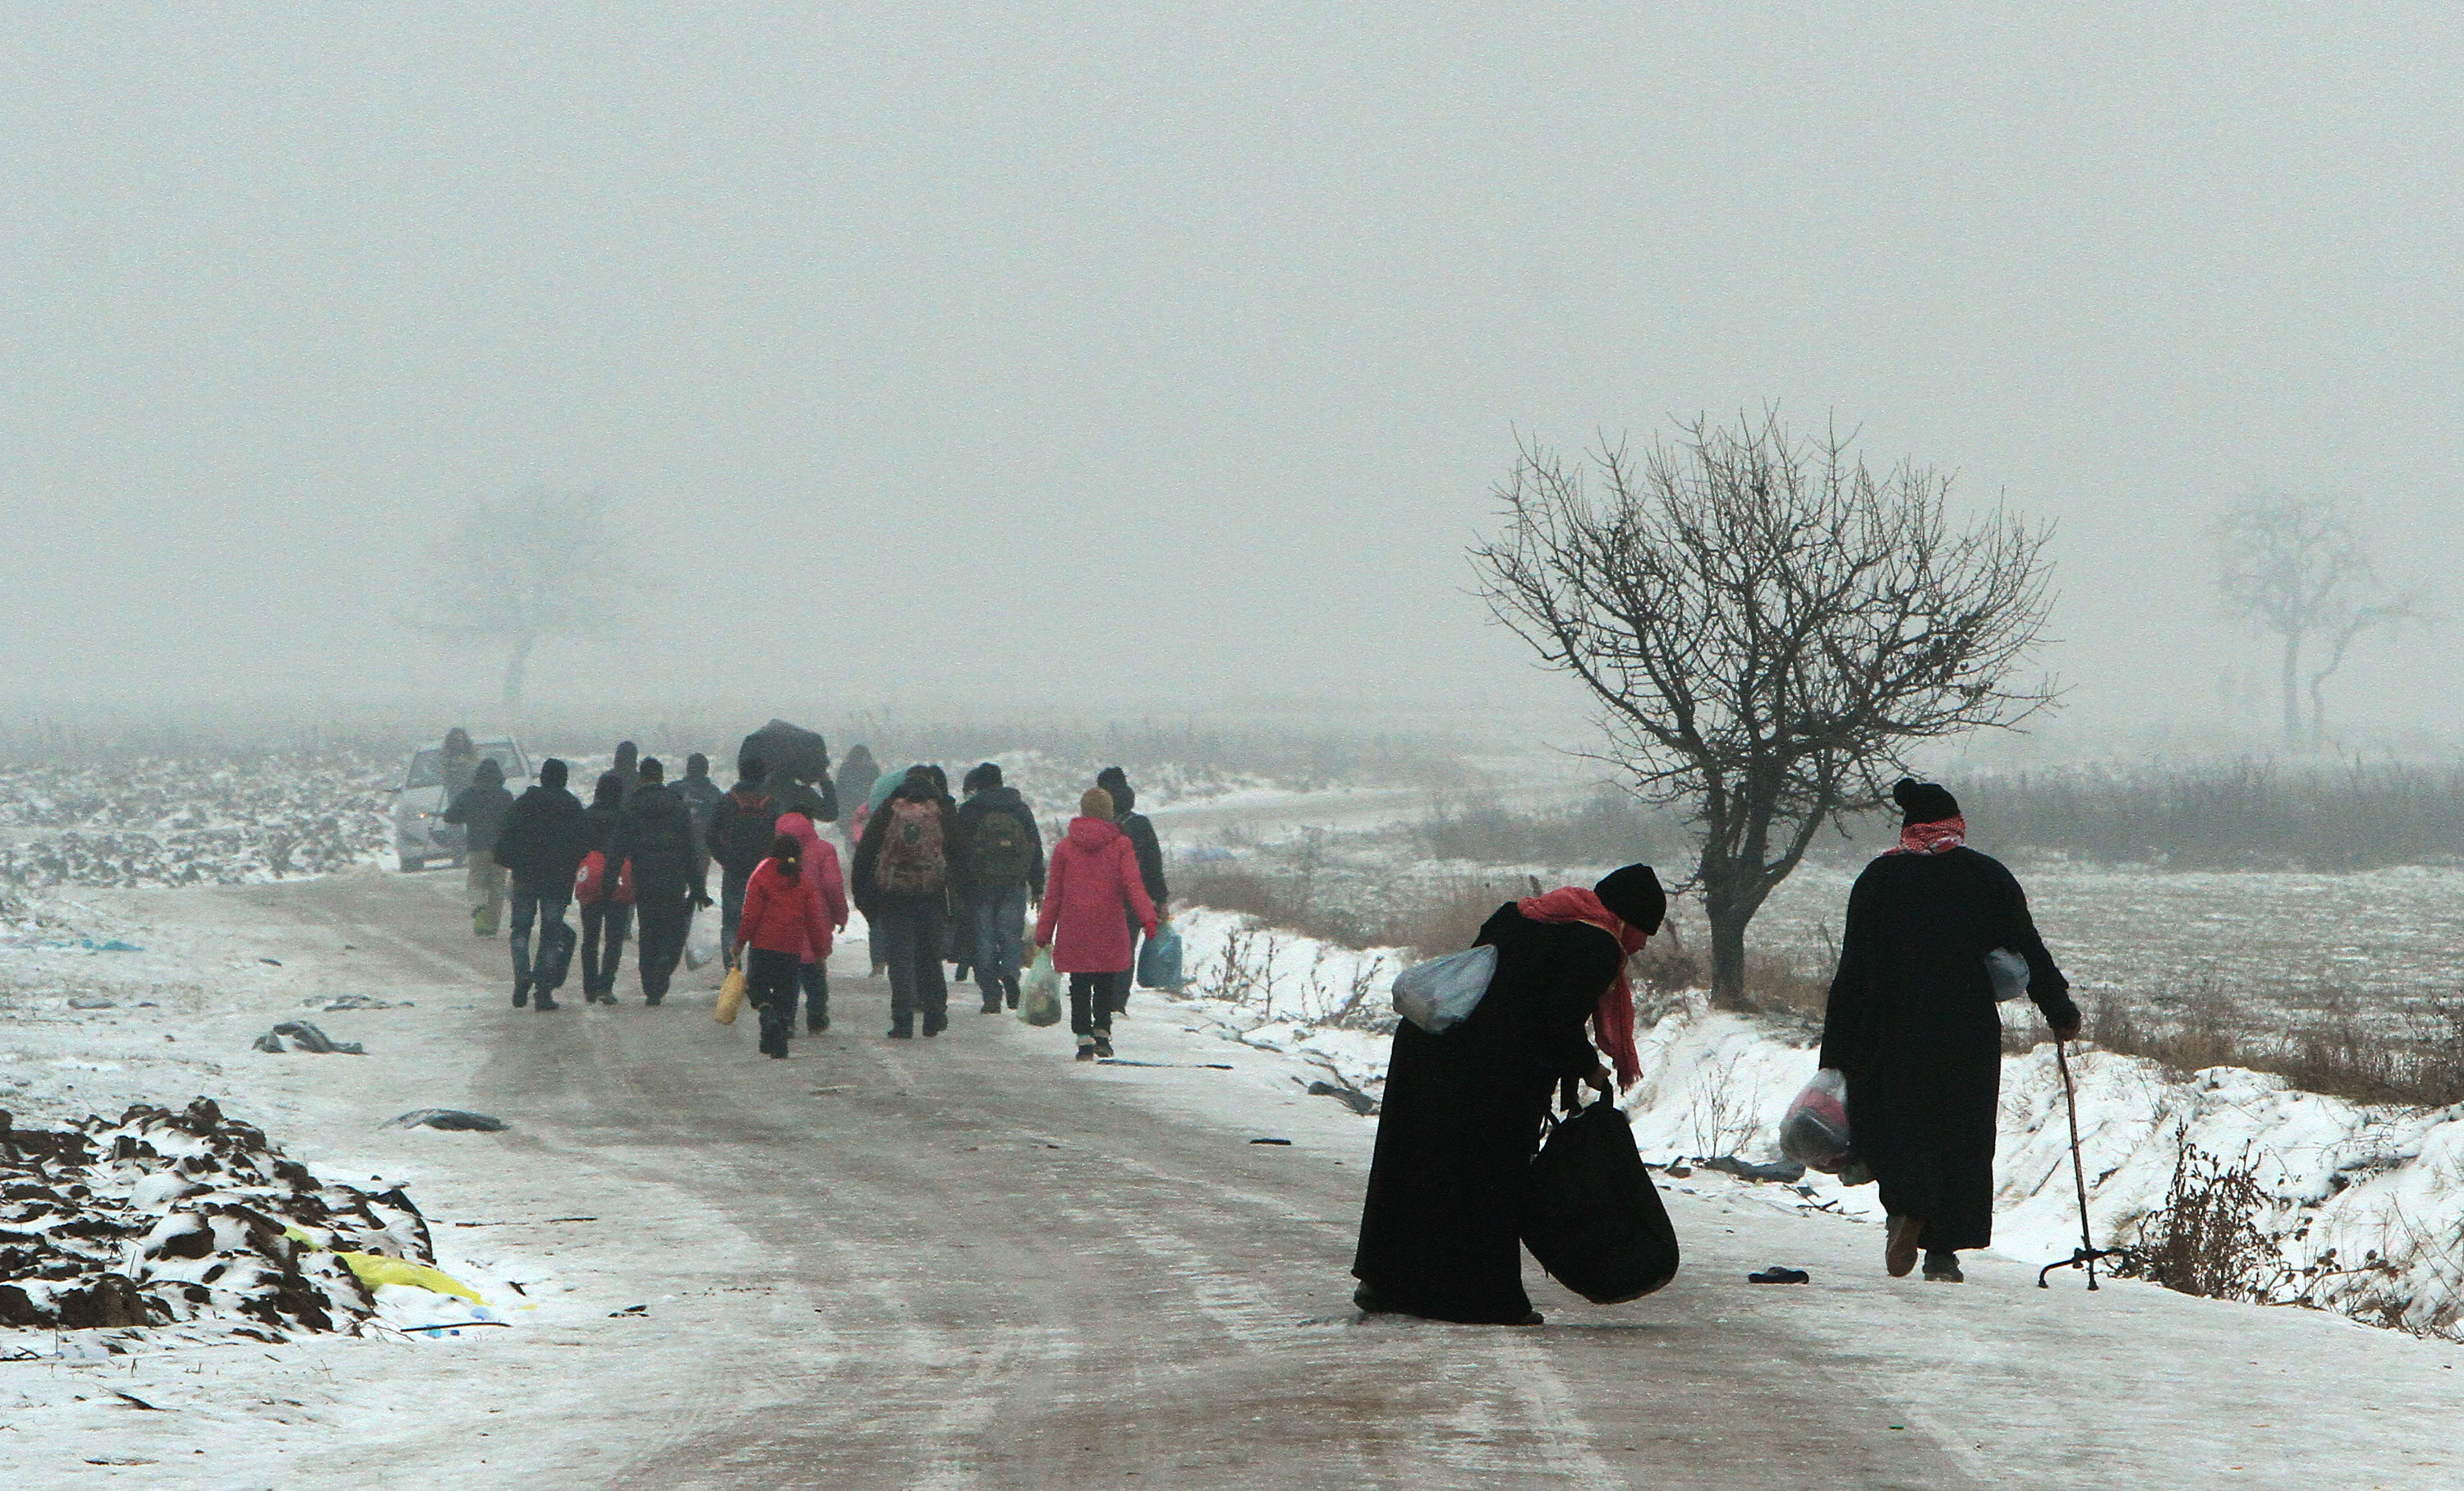 People of all ages brave the snow and cold weather as they try to reach a refugee camp on Tuesday in the Serbian village of Miratovac near border between Serbia and Macedonia [Djordje Savic/EPA]